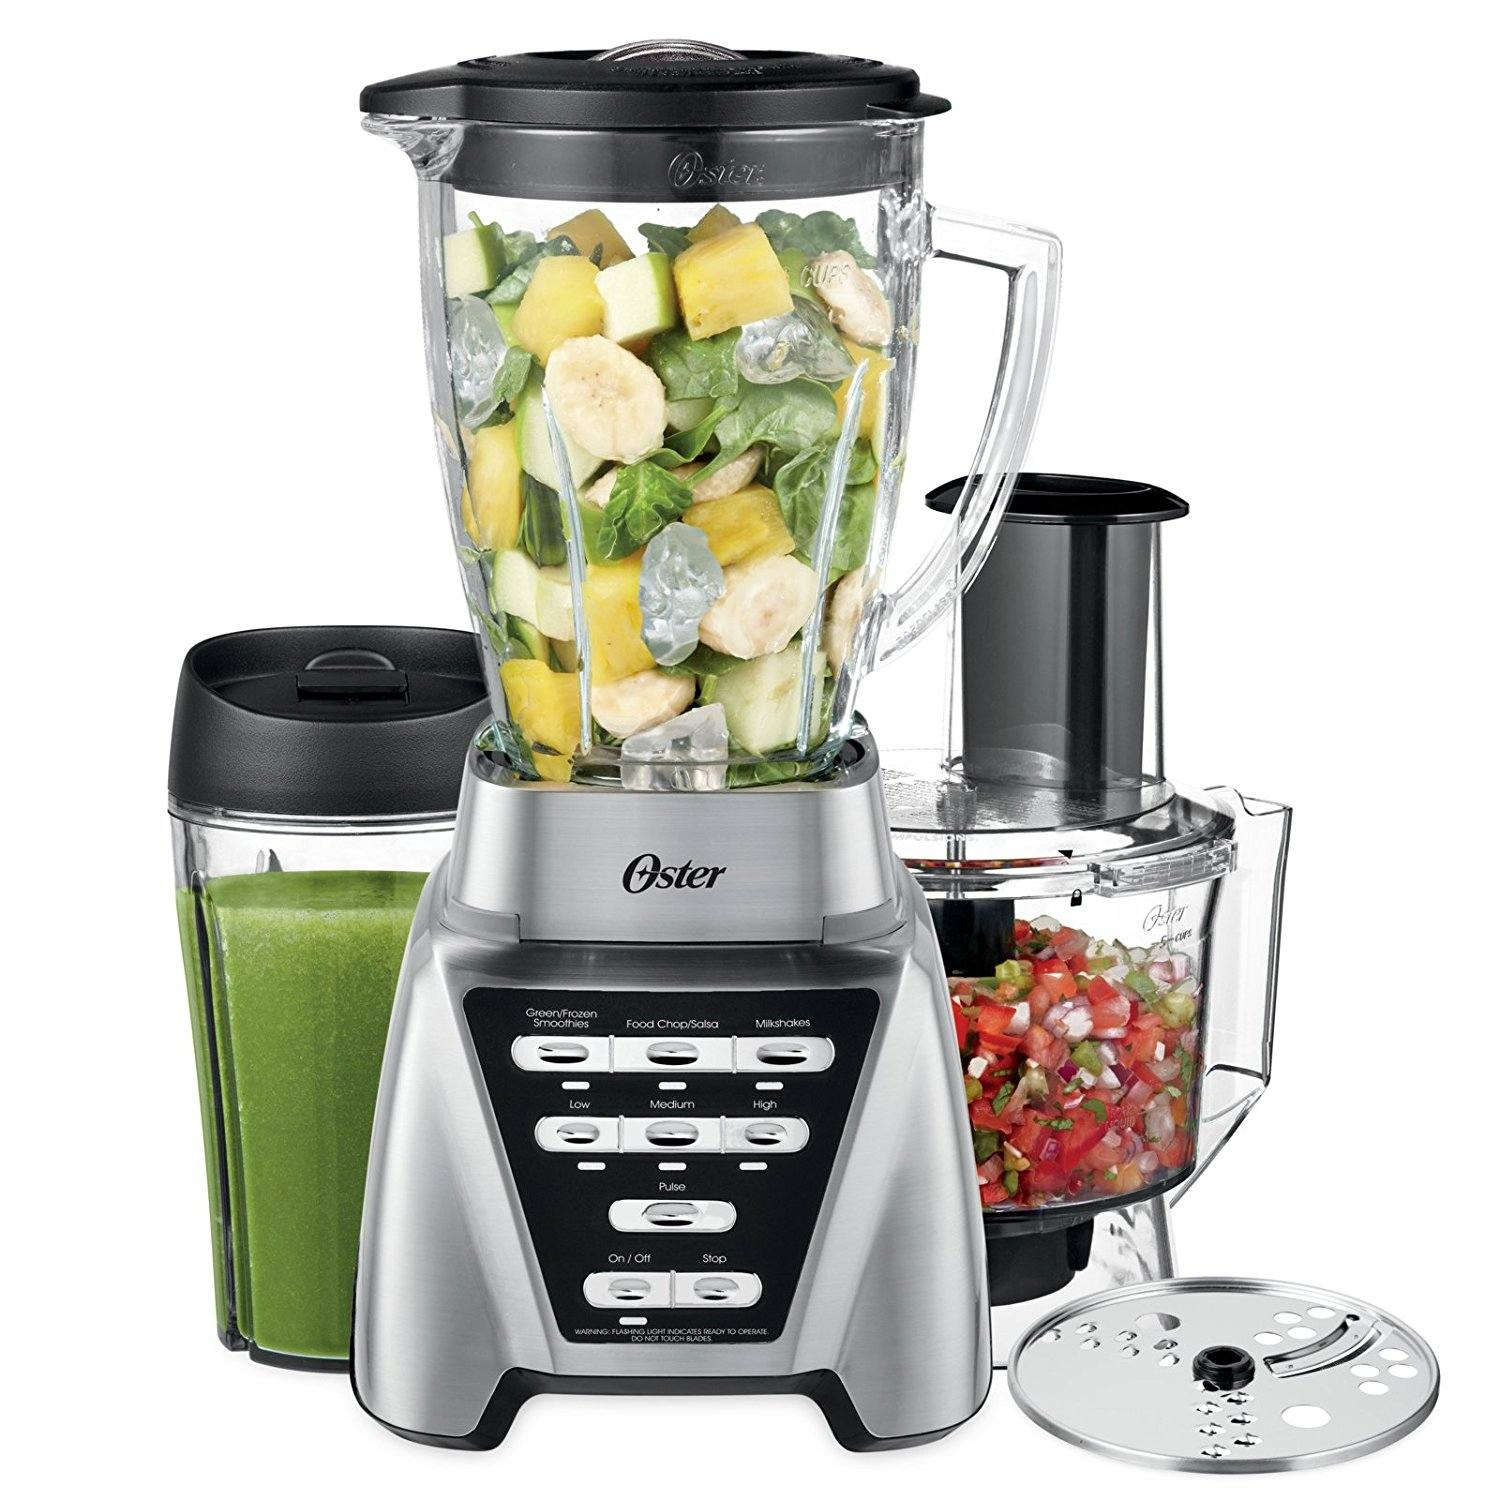 Oster Pro 1200 3-in-1 Food Processor